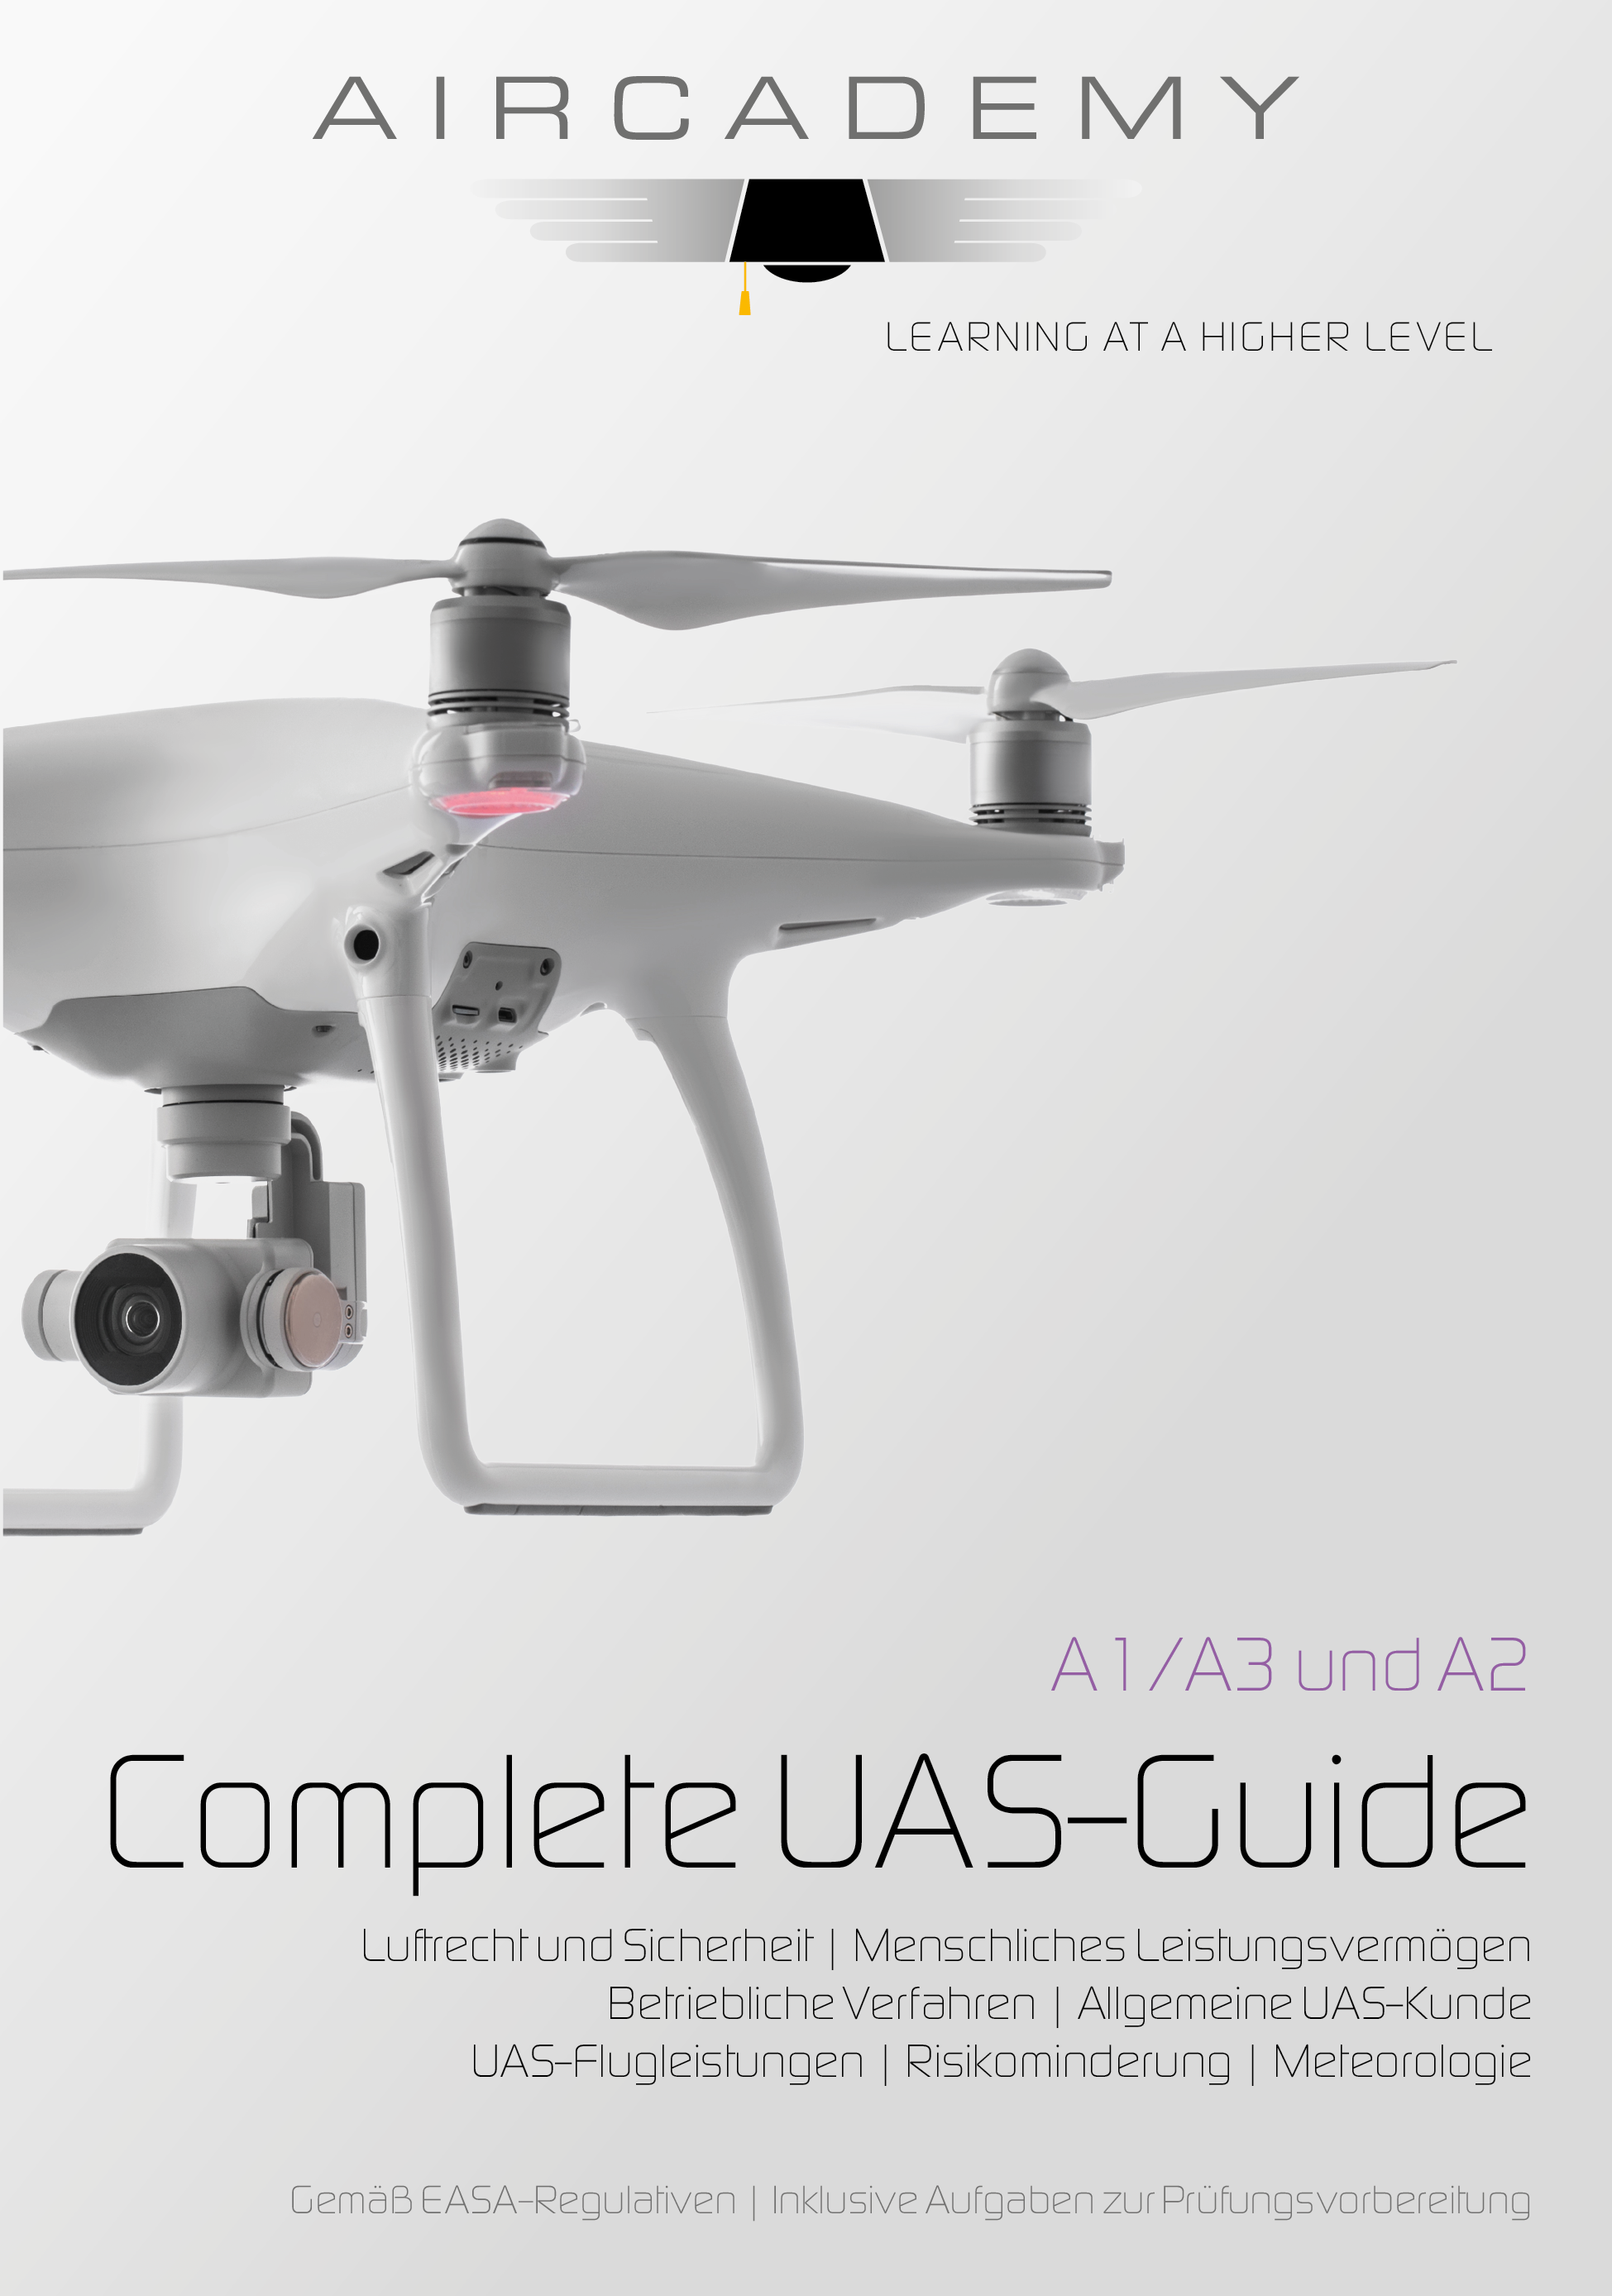 Aircademy Complete UAS Guide